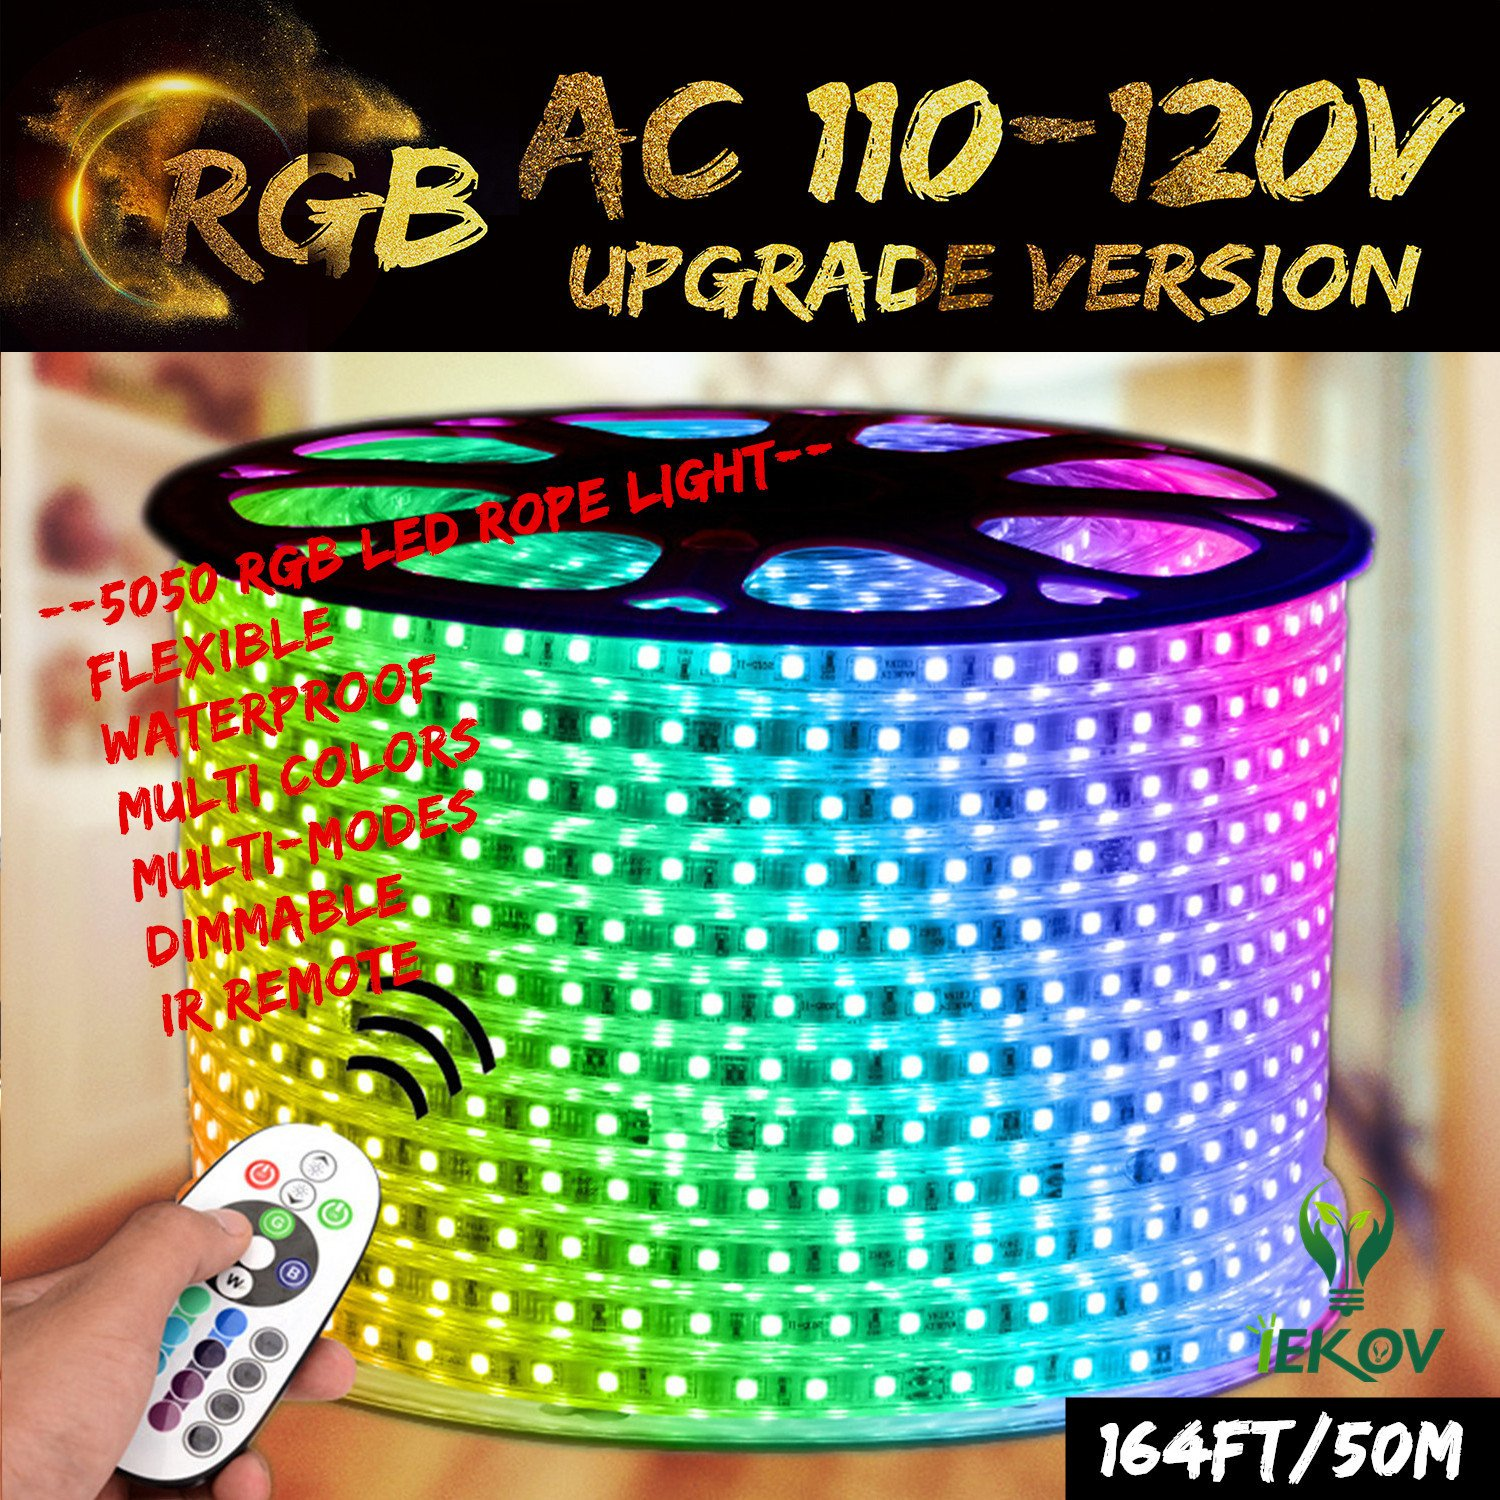 RGB LED Strip Light, IEKOV™ AC 110-120V Flexible/Waterproof/Multi Colors/Multi-Modes Function/Dimmable SMD5050 LED Rope Light with Remote for Home/Office/Building Decoration (164ft/50m)